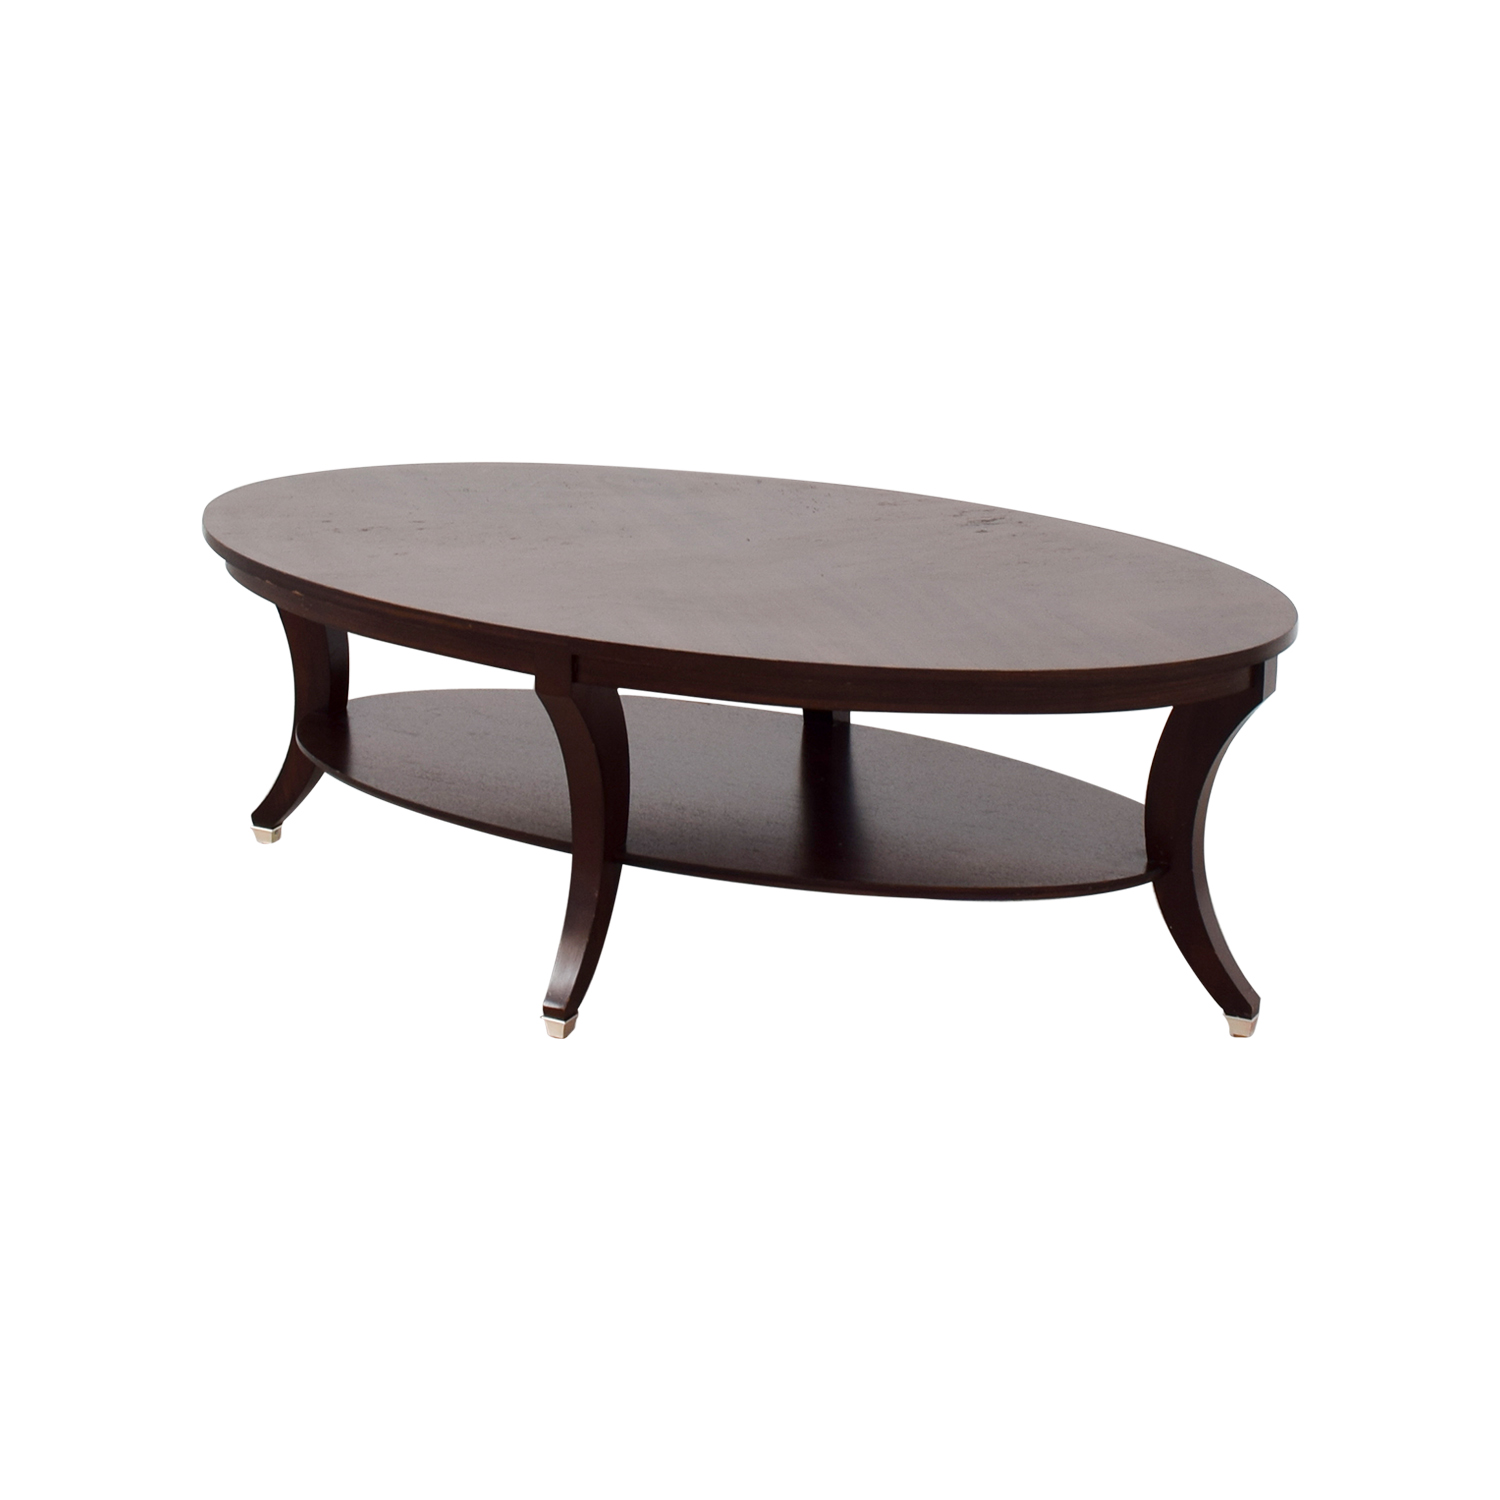 63% OFF Ethan Allen Ethan Allen Adler Oval Coffee Table Tables